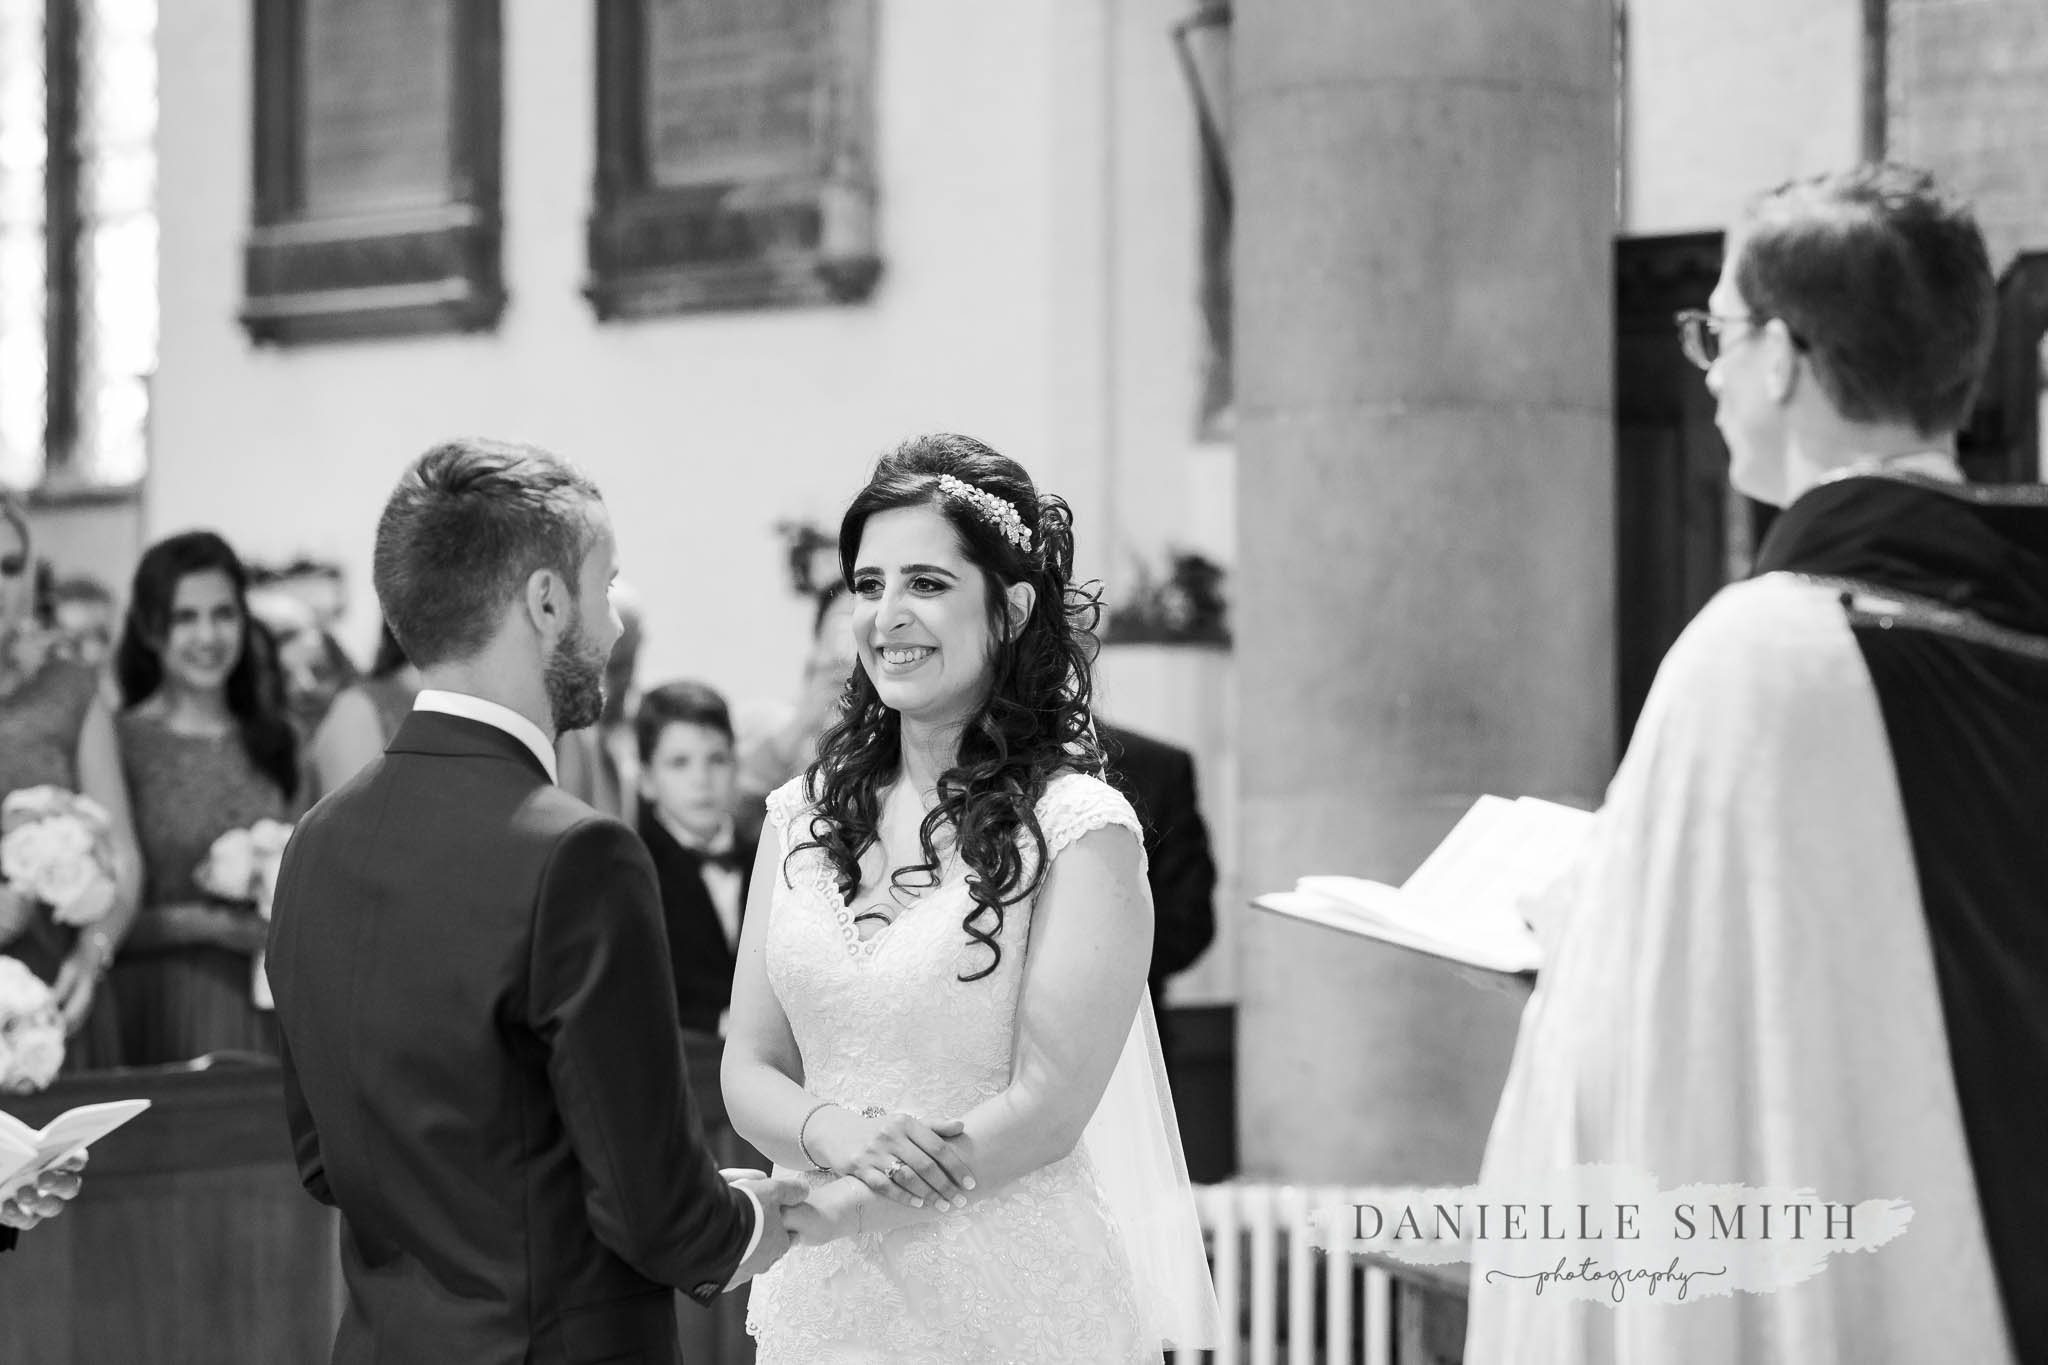 bride and groom taking vows in church